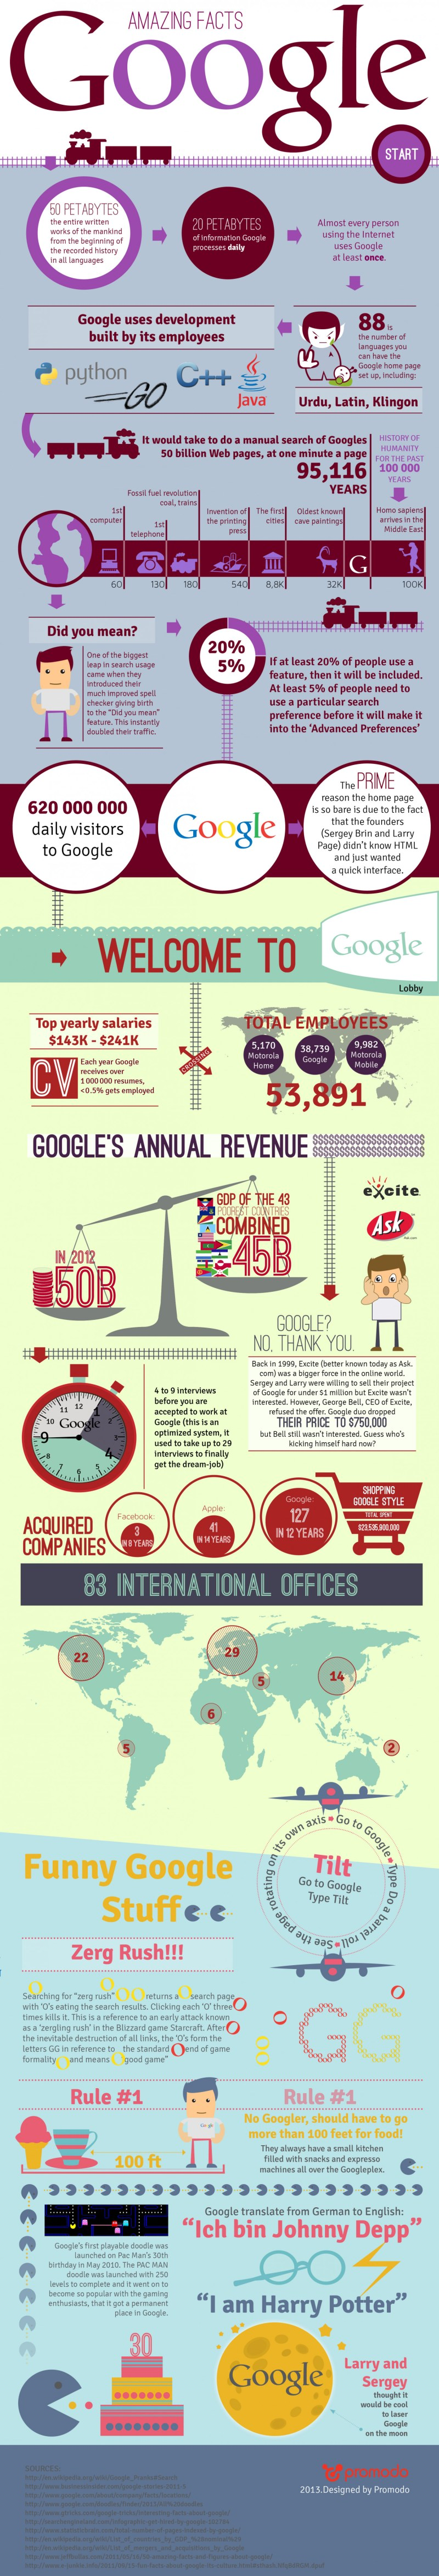 Infographic - Astounding Google Facts